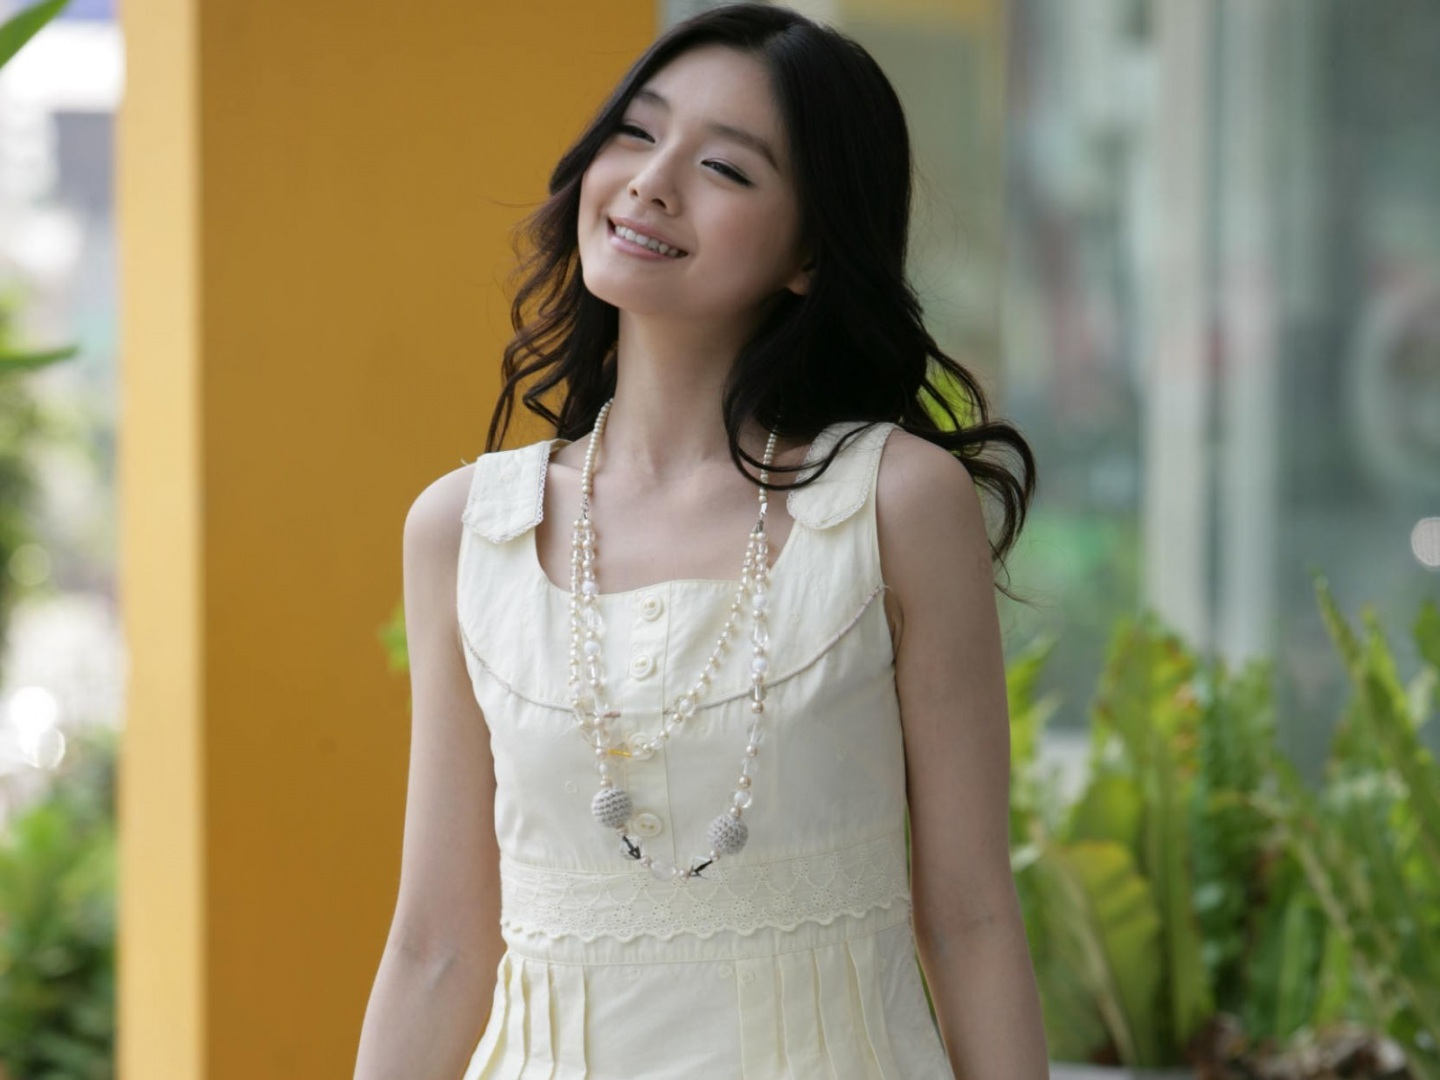 1440x1080 - Barbie Hsu Wallpapers 16